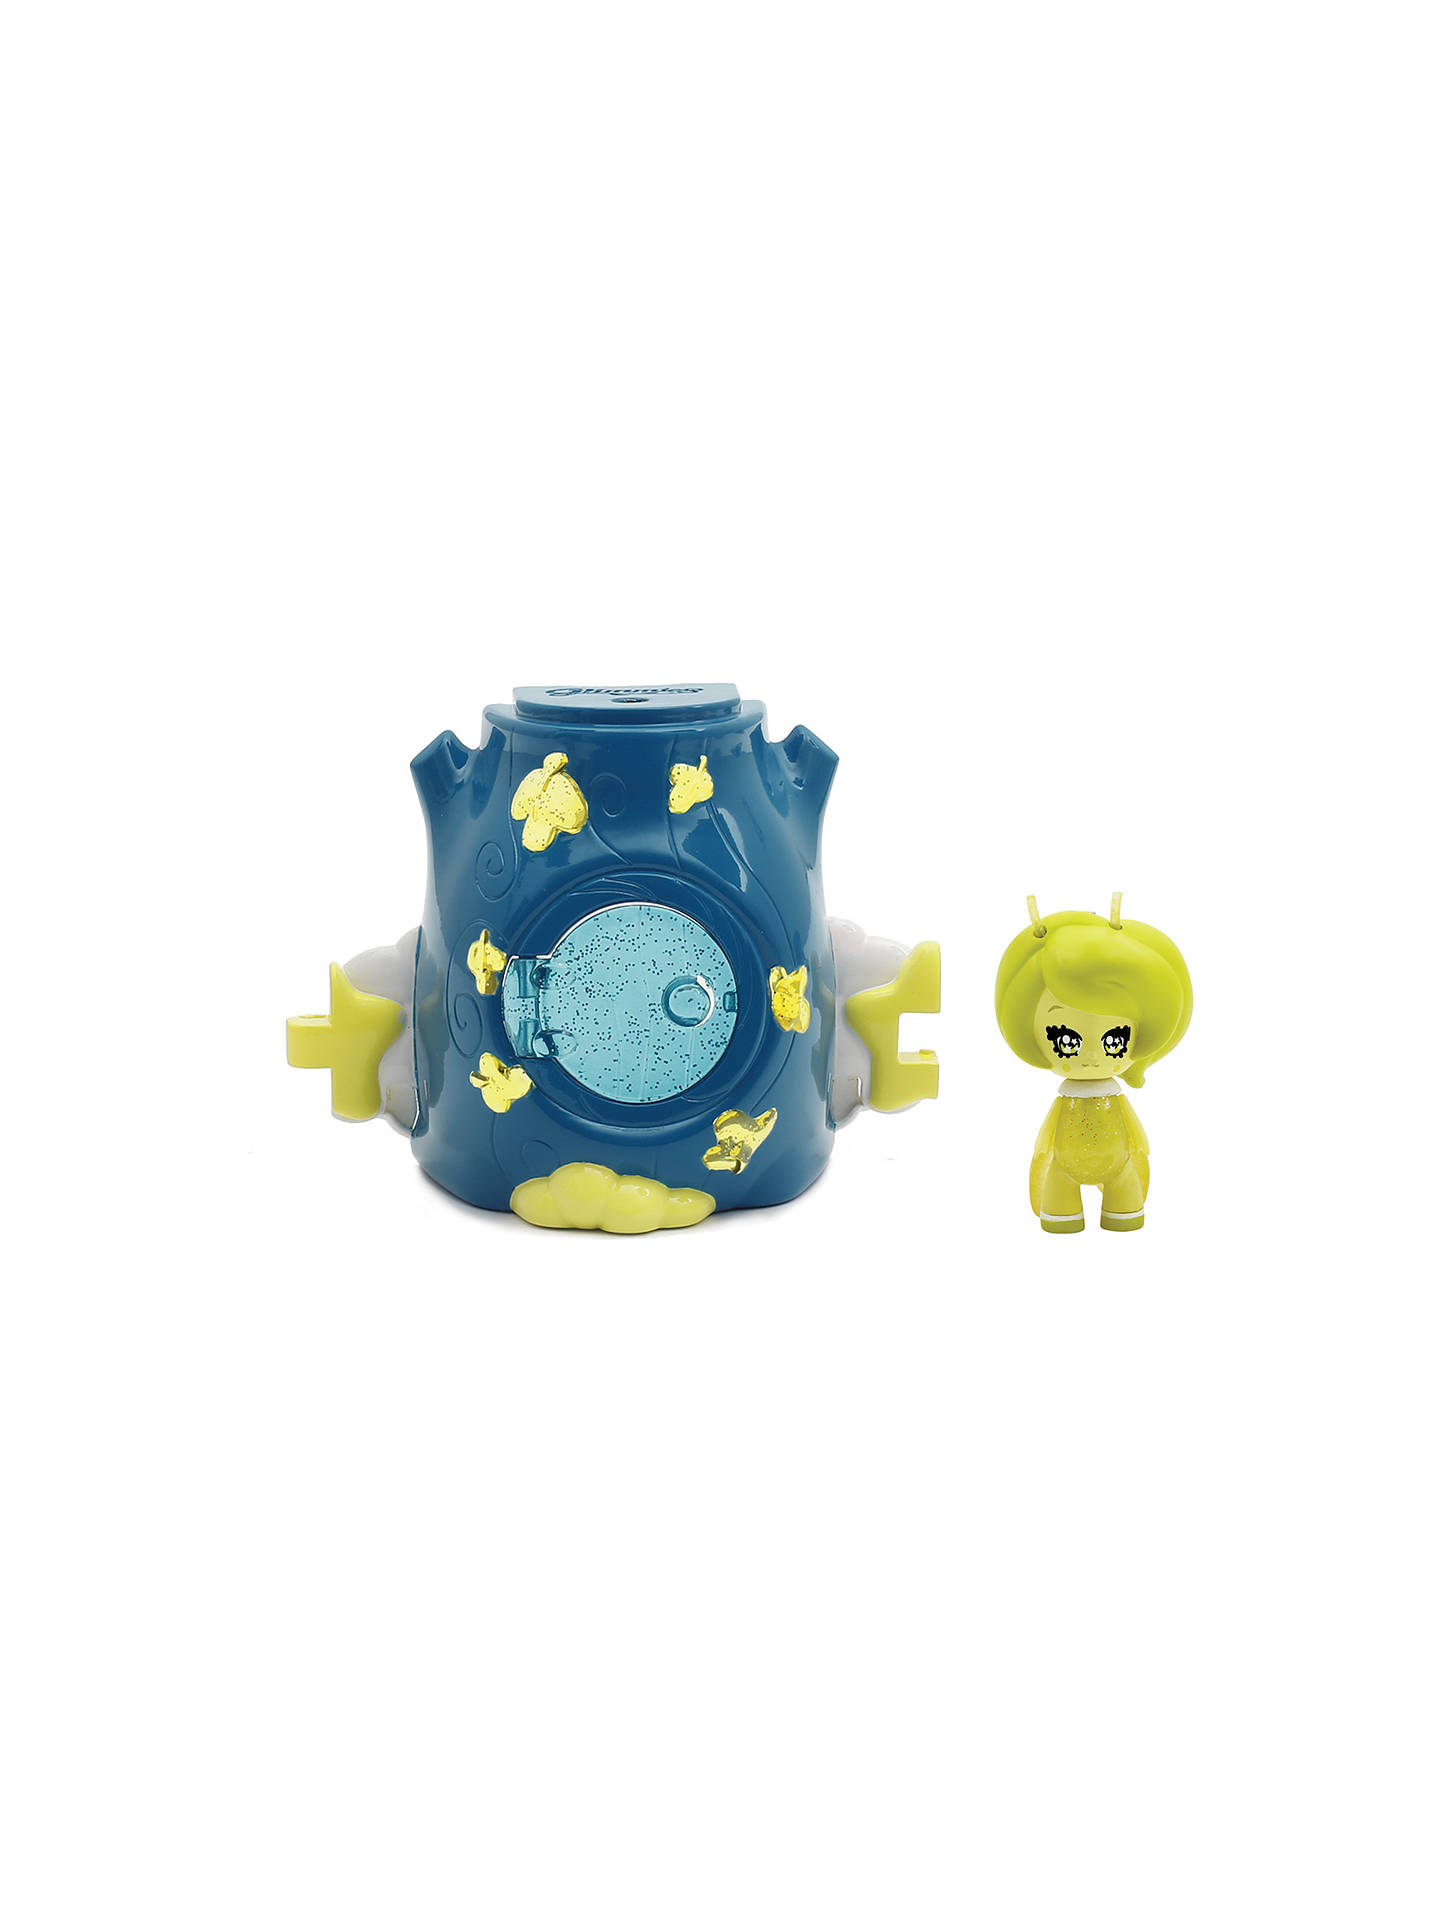 Glimmies Llight-Up Function Glimmies Small Blue Glimhouse and Yellow Glimmie